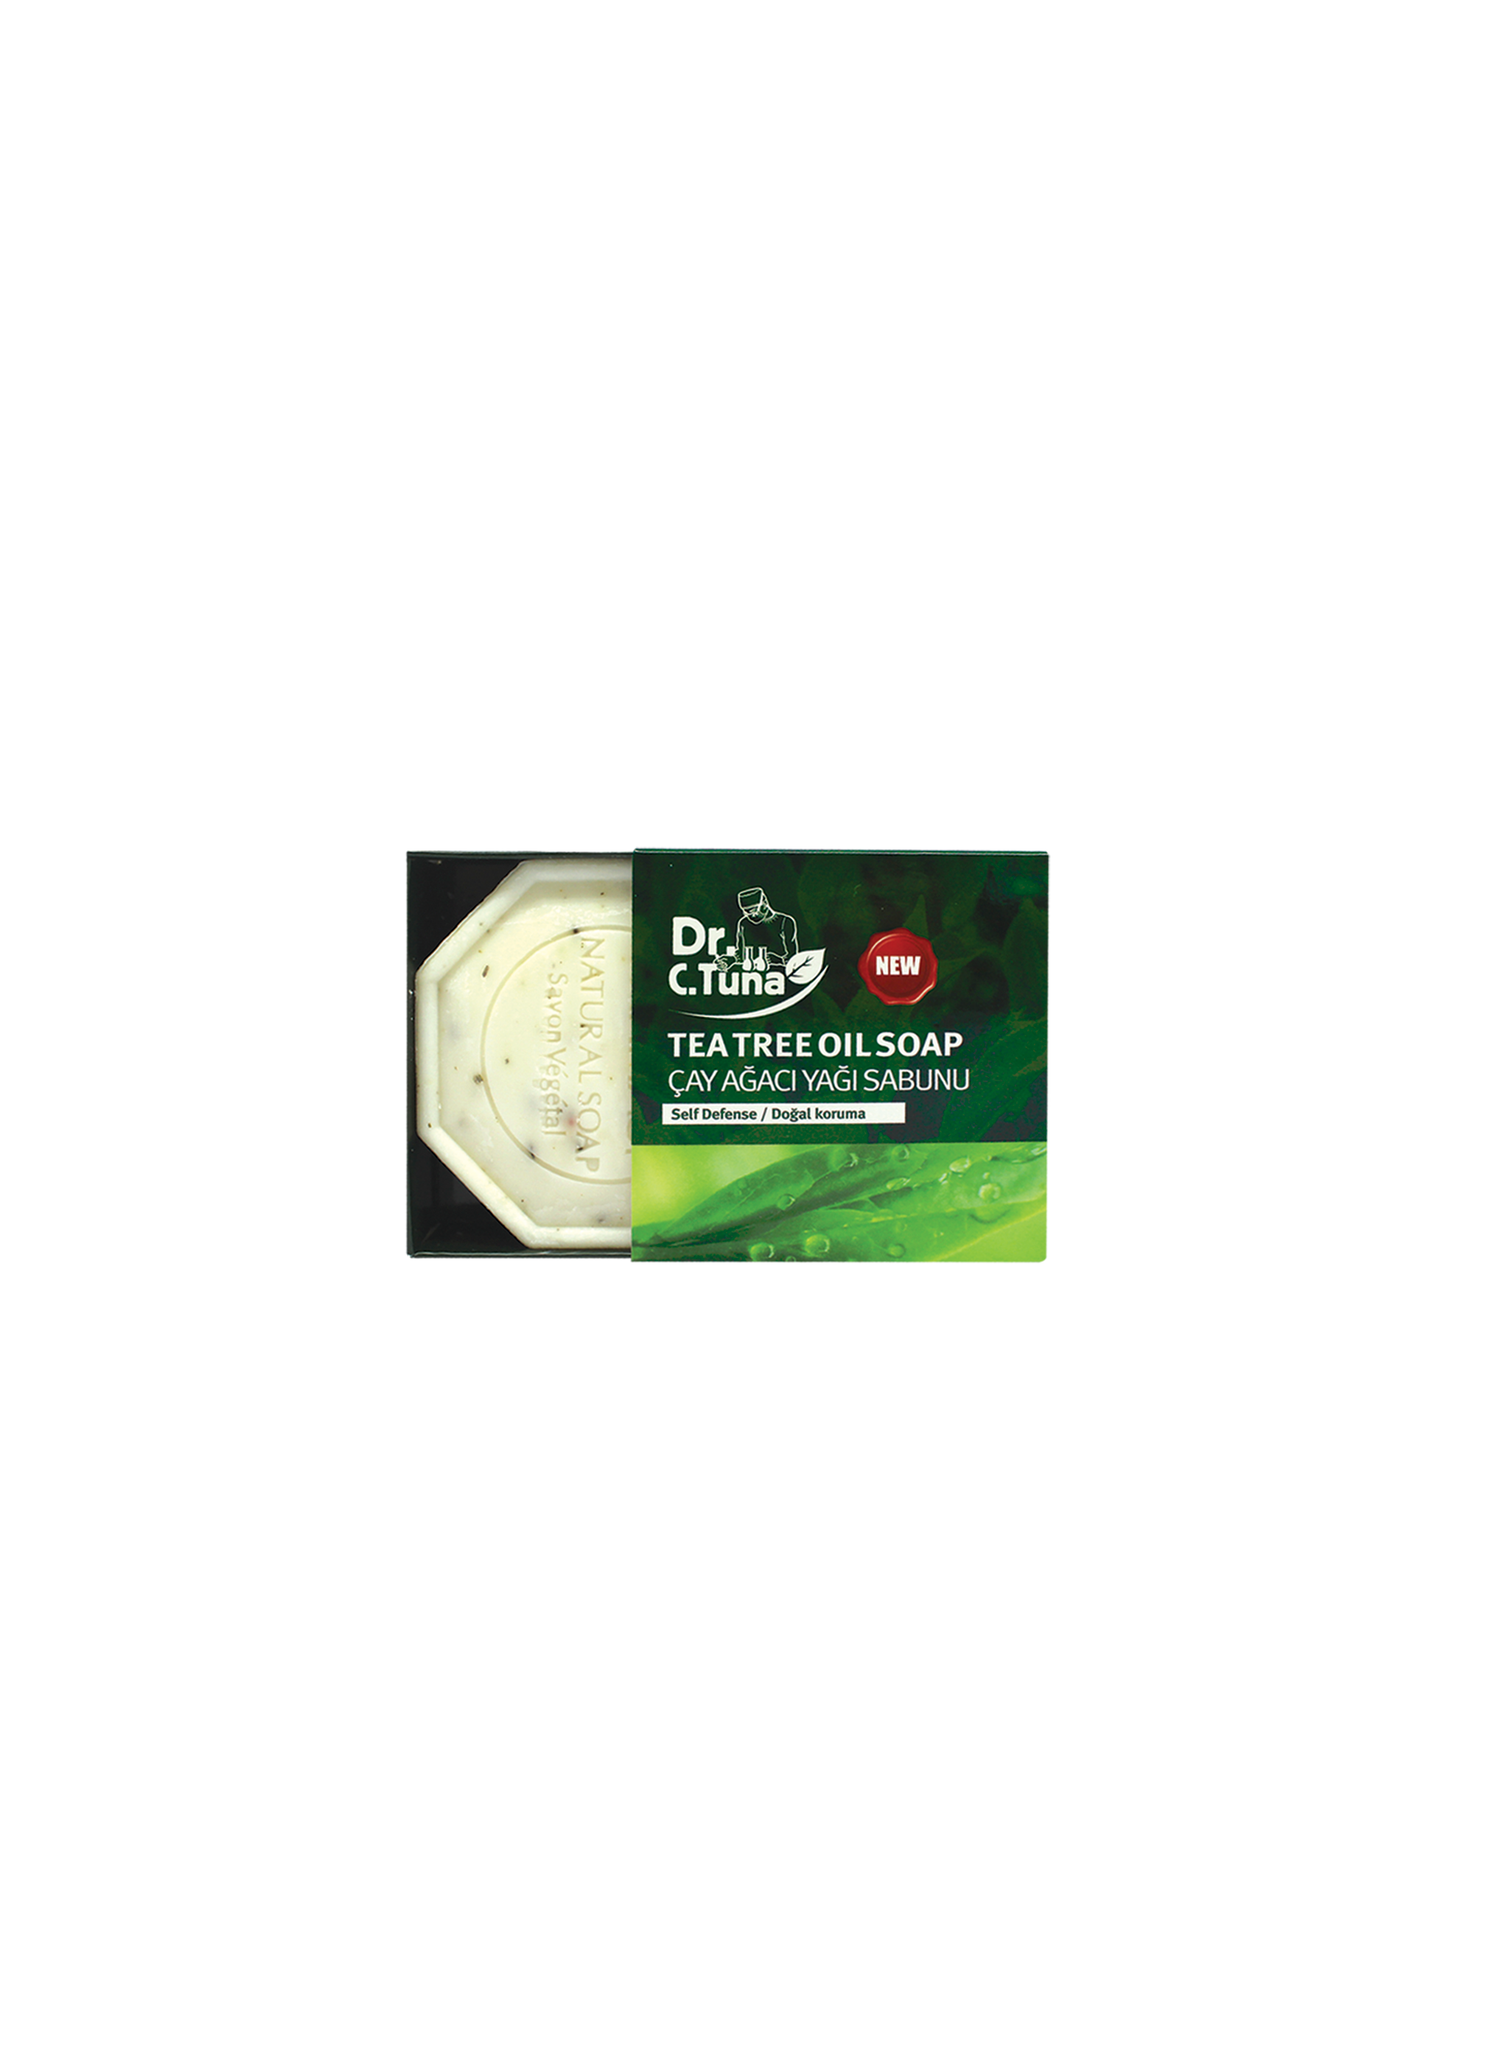 DR. C. Tuna Tea Tree Oil Soap (100 g)